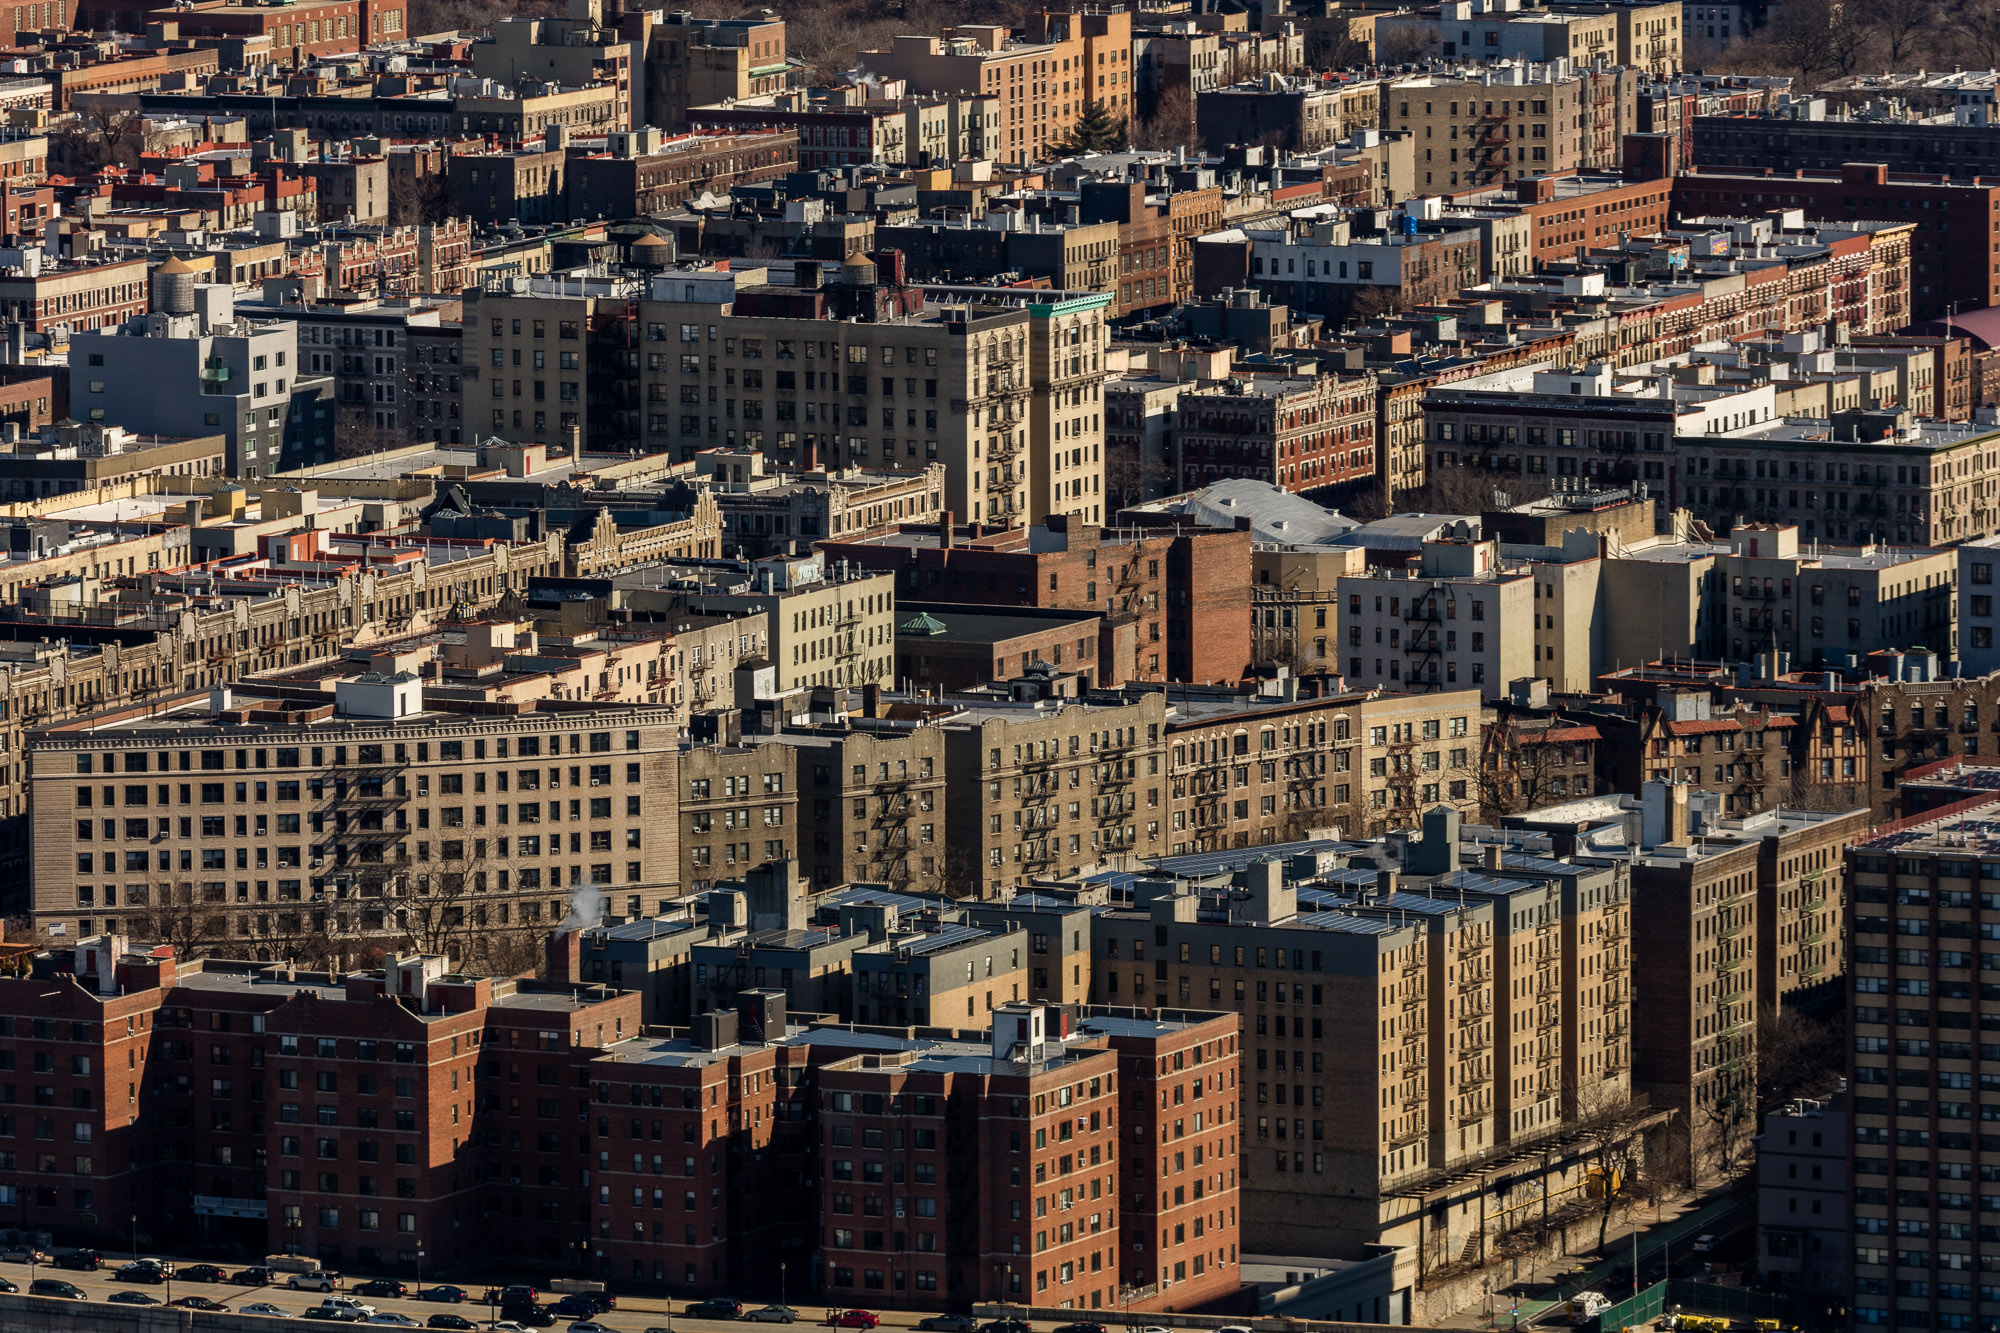 Dozens of high-rise apartment buildings densely packed together in Northern Manhattan.